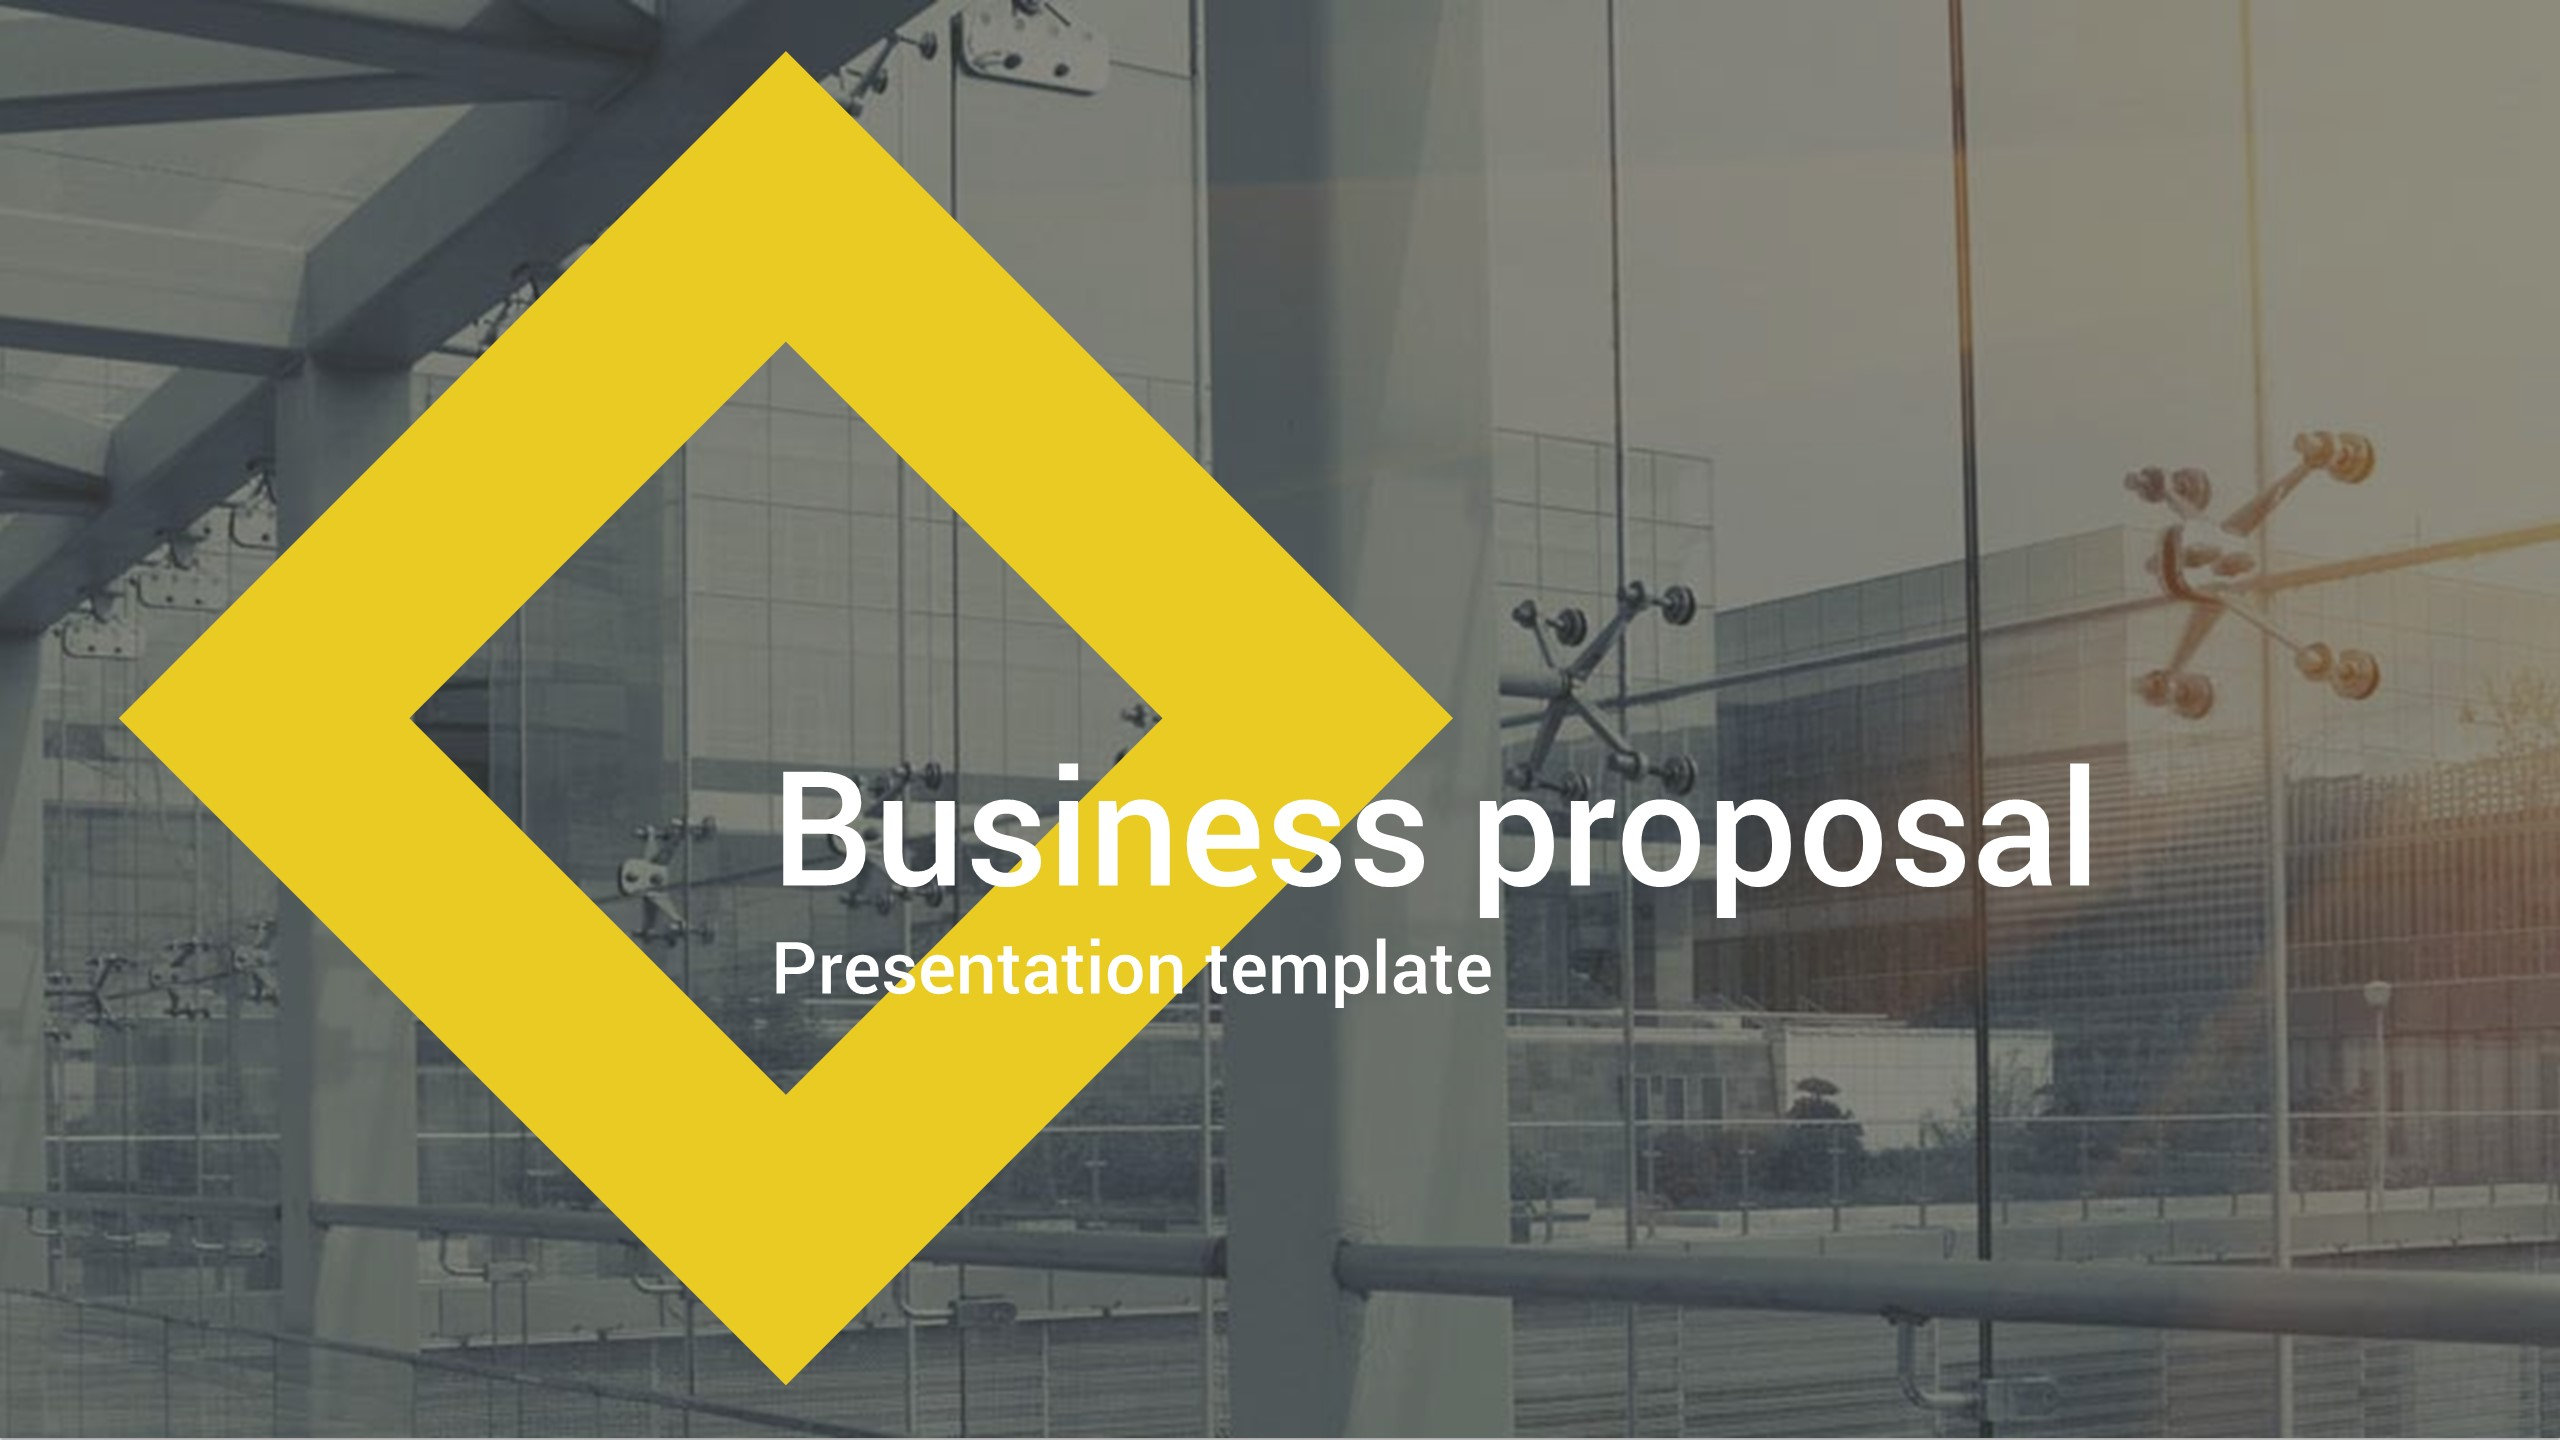 business proposal powerpoint templatemalis | graphicriver, Powerpoint templates